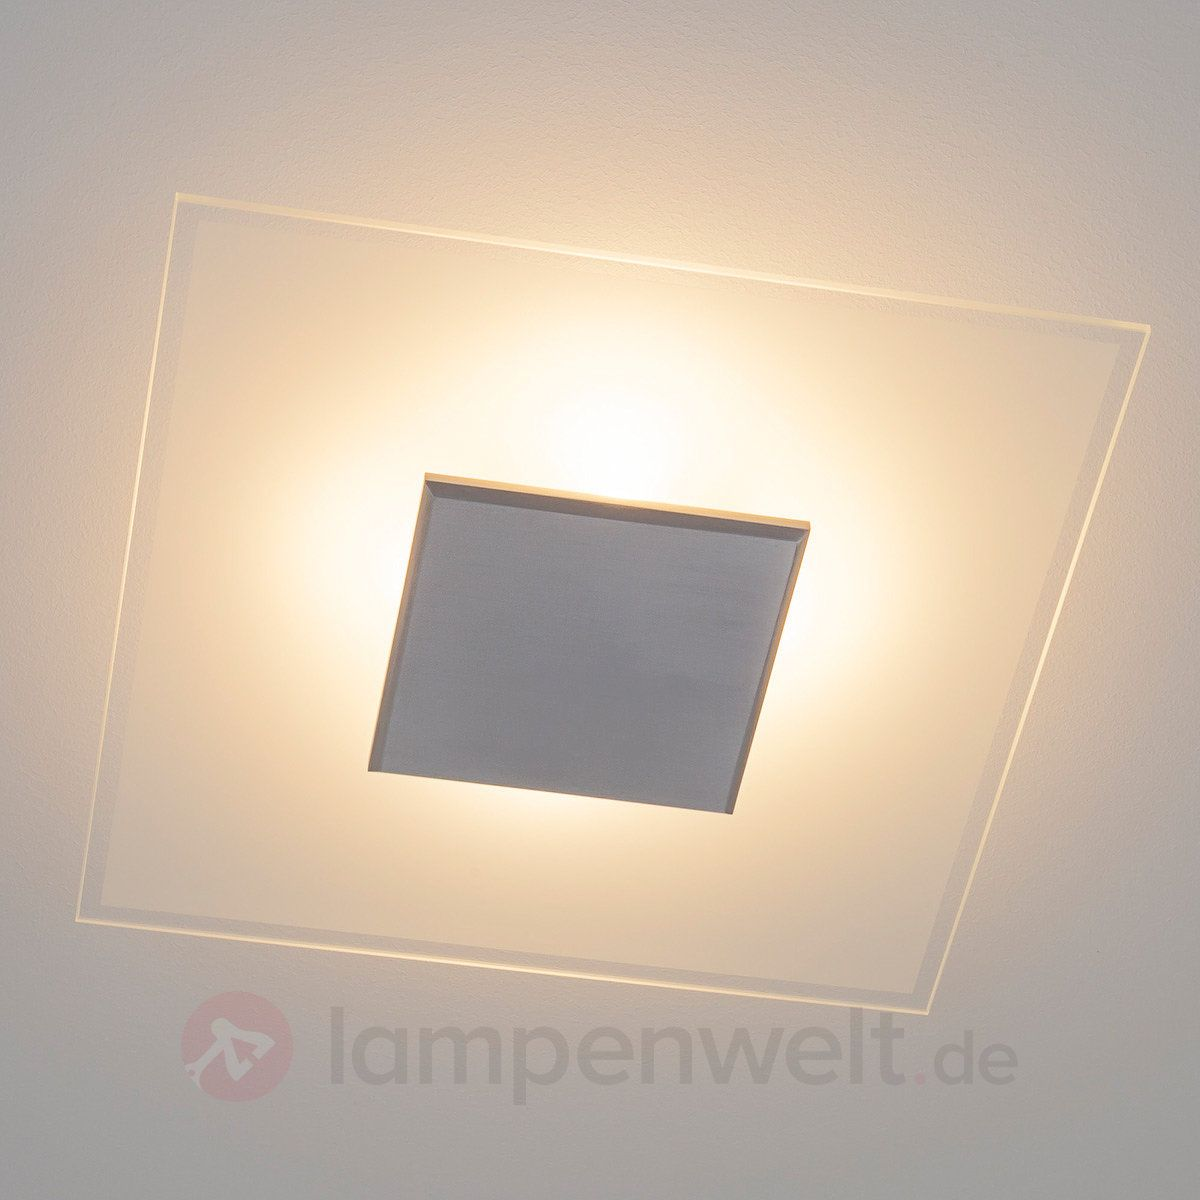 dimmbare led deckenleuchte